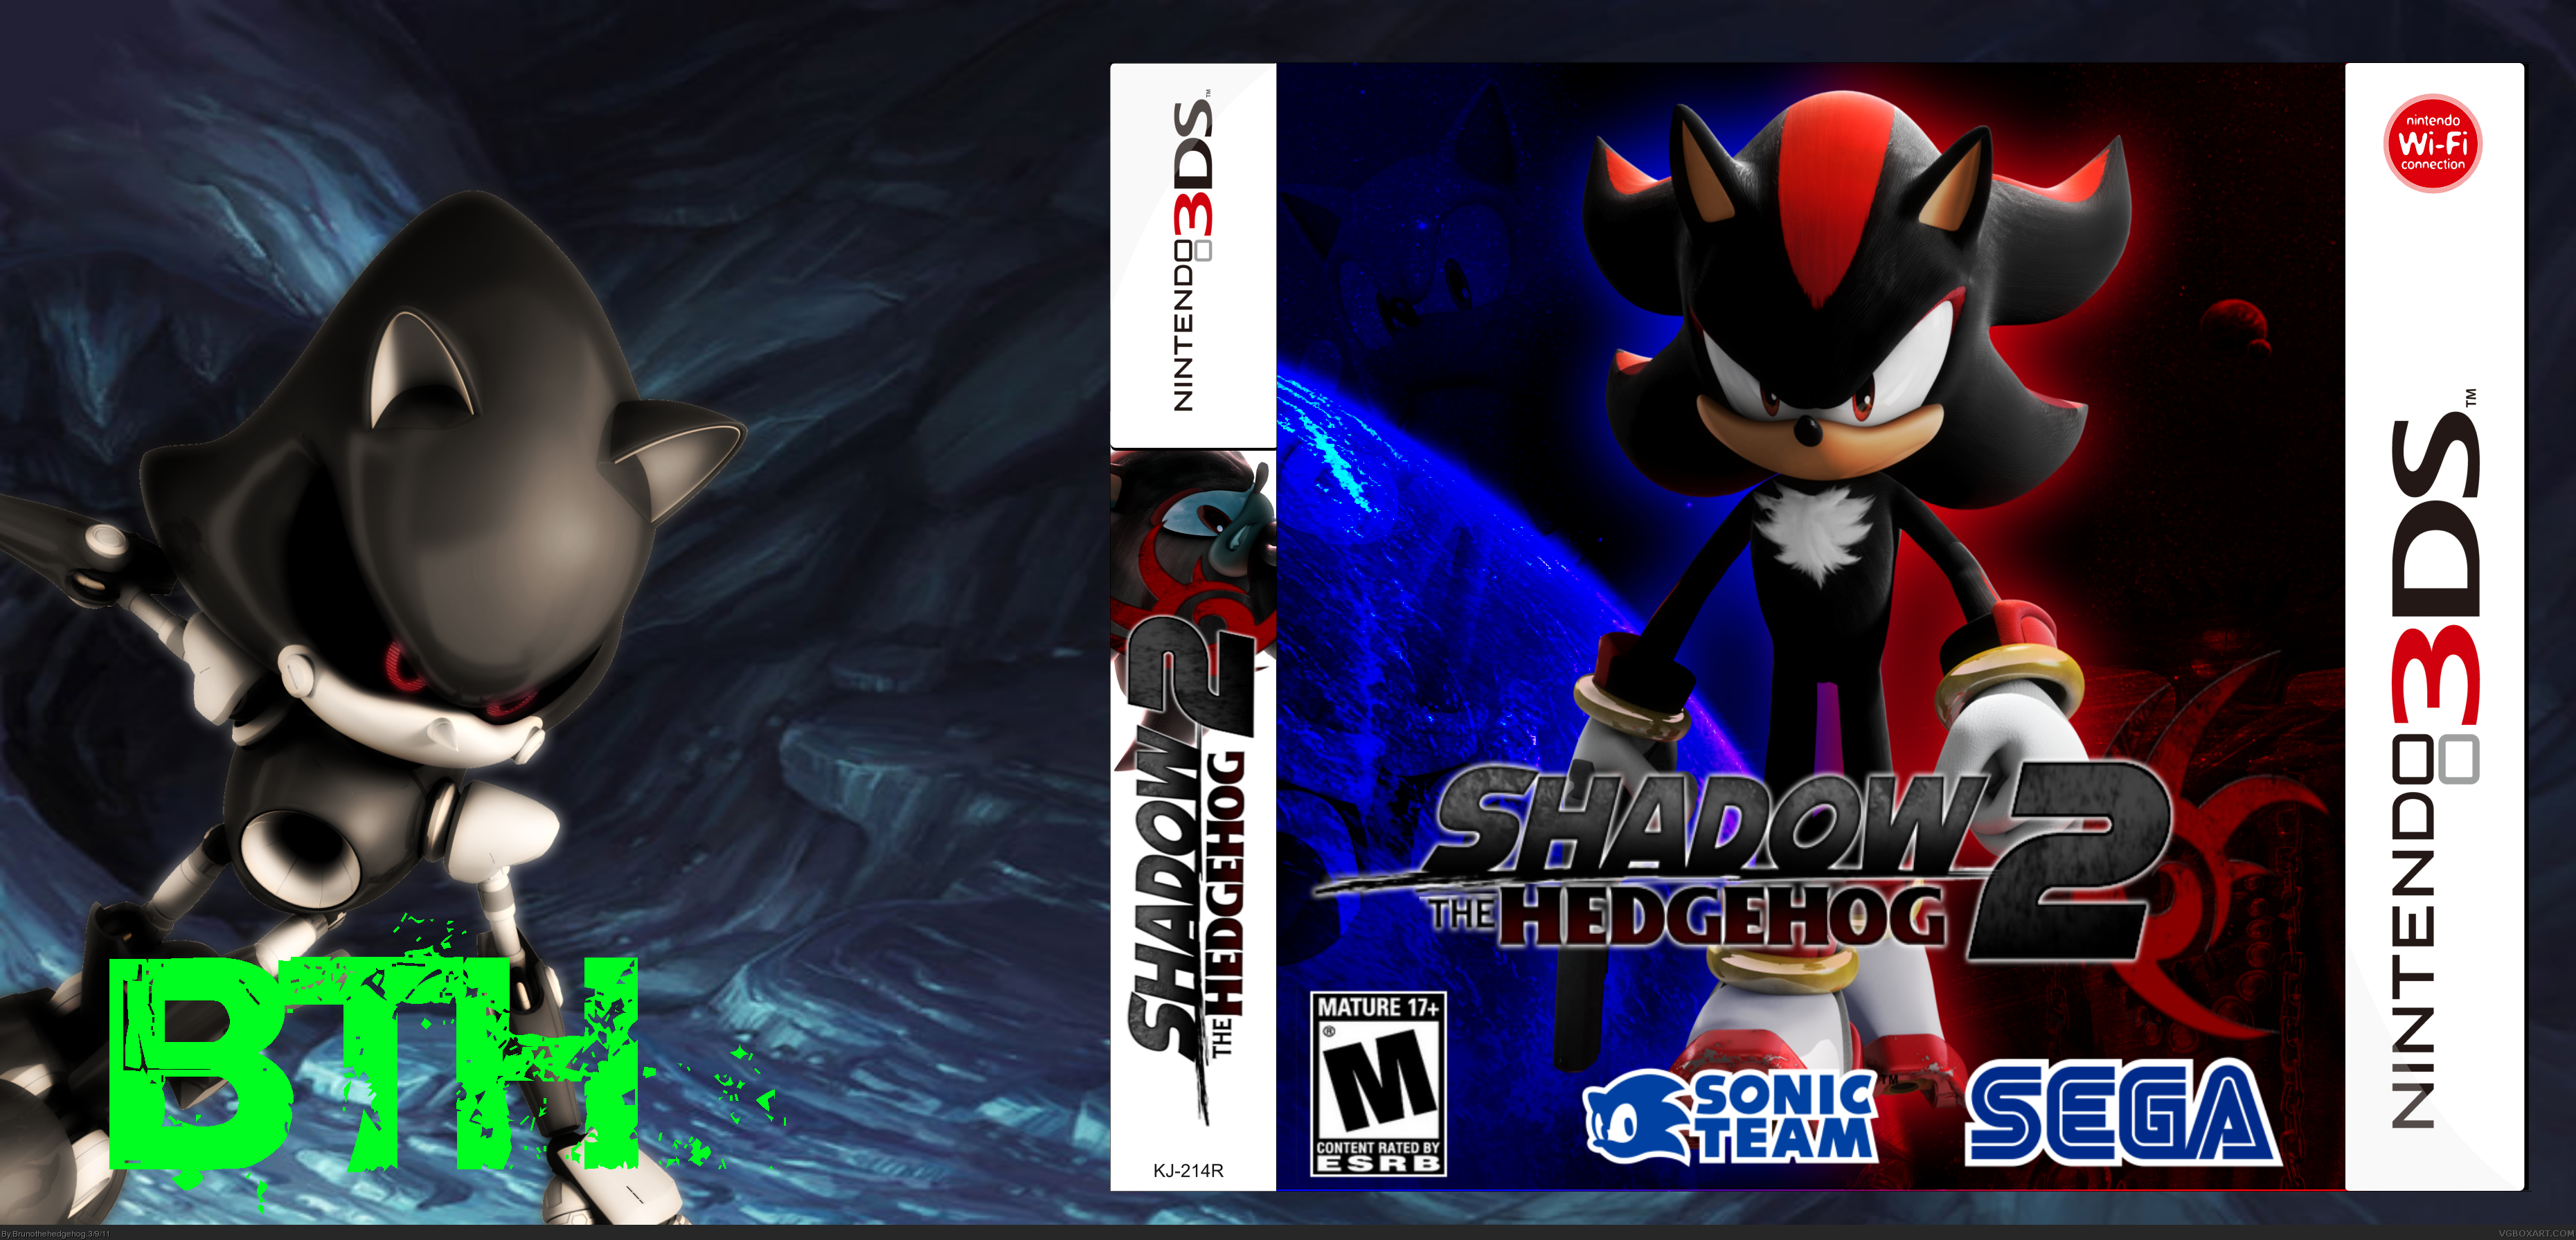 Viewing full size Shadow the Hedgehog 2 box cover